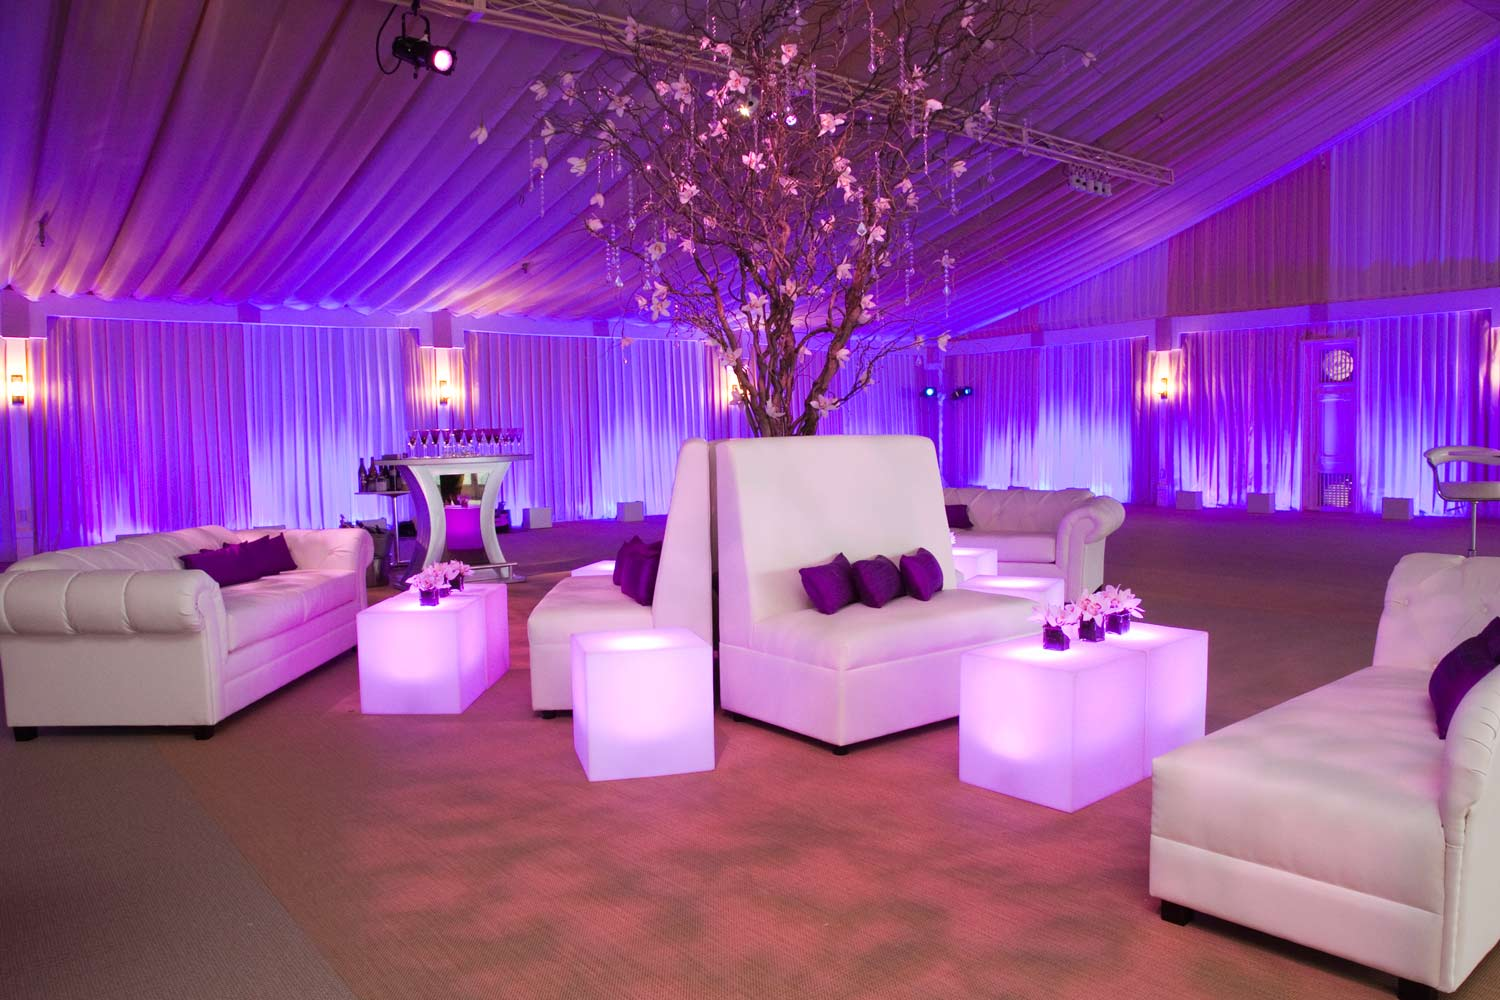 event decor furniture lounge rental party seating rentals events purple lighted led corporate theme mood trade afr june lighting outdoor